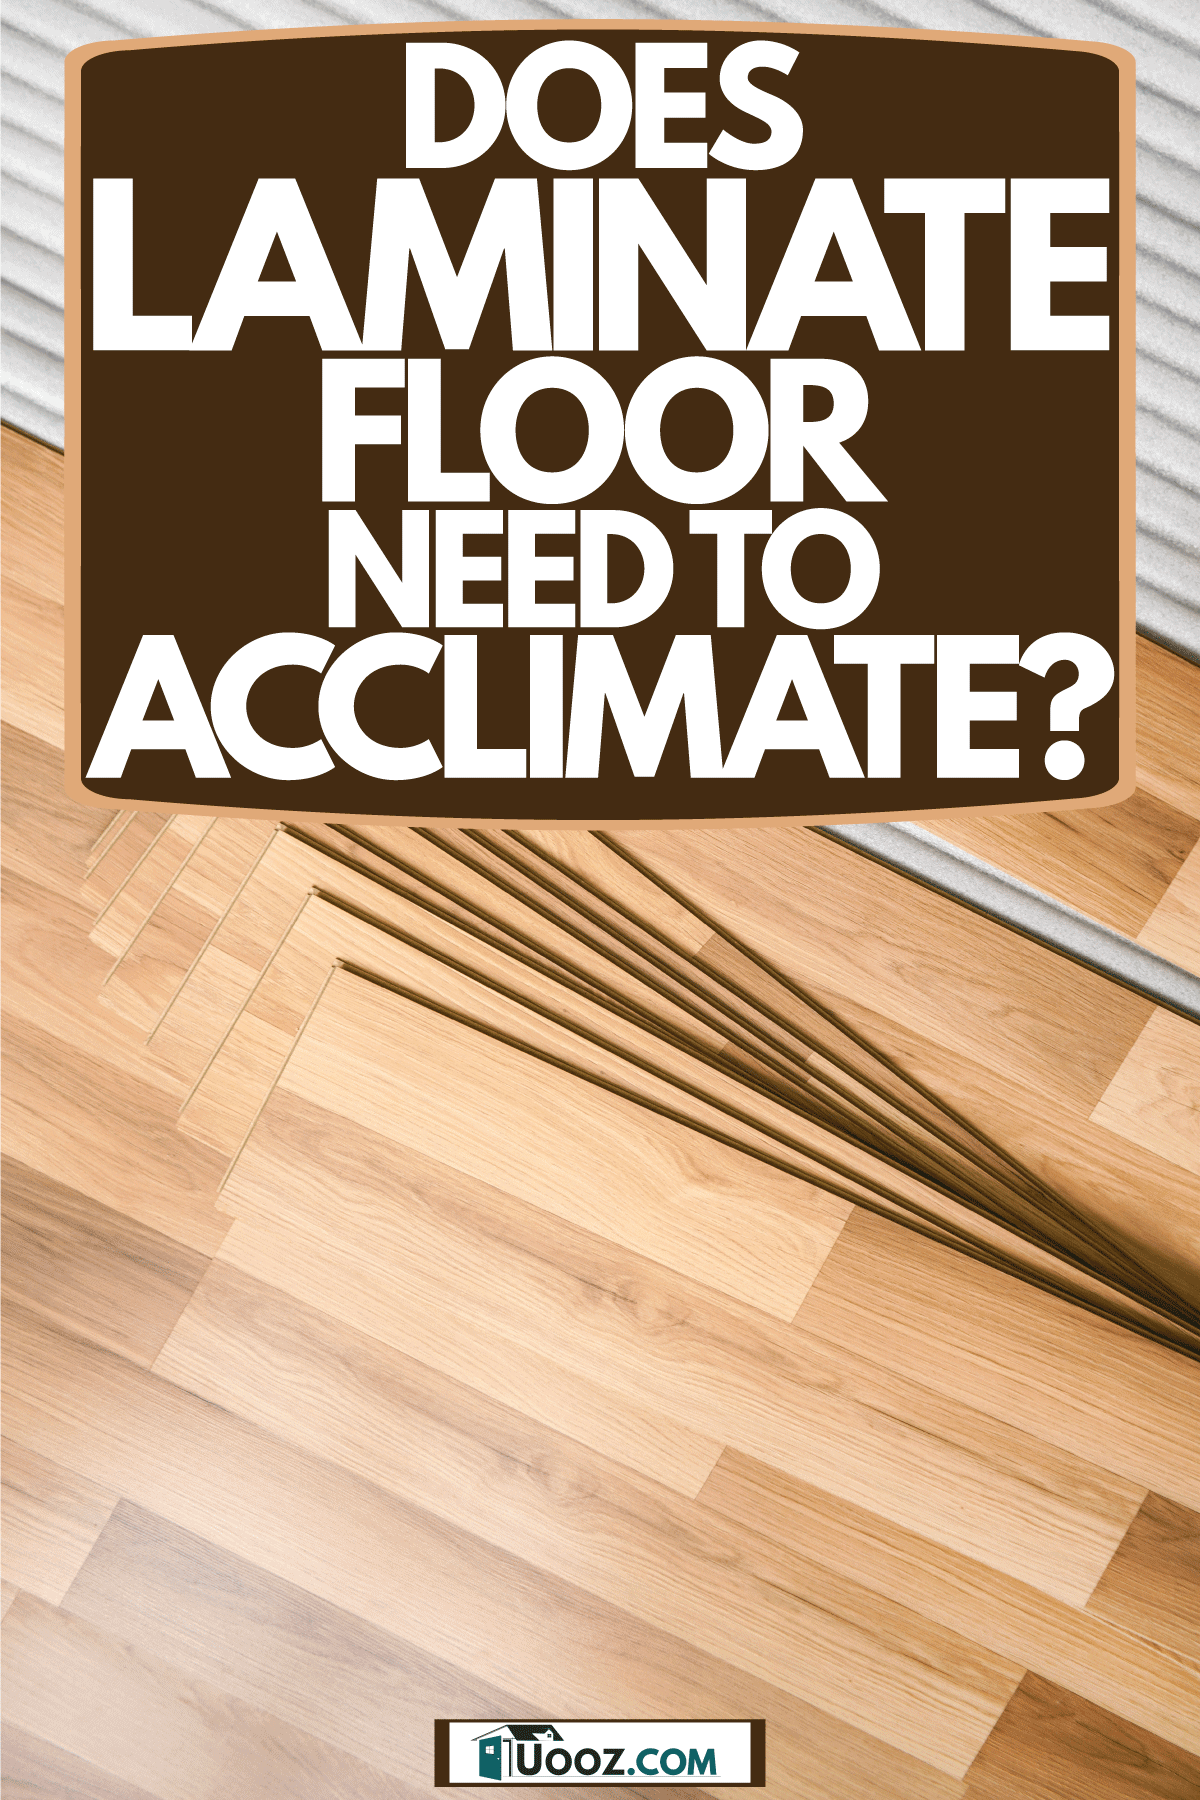 Square patterned wooden laminated flooring, Does Laminate Floor Need To Acclimate?